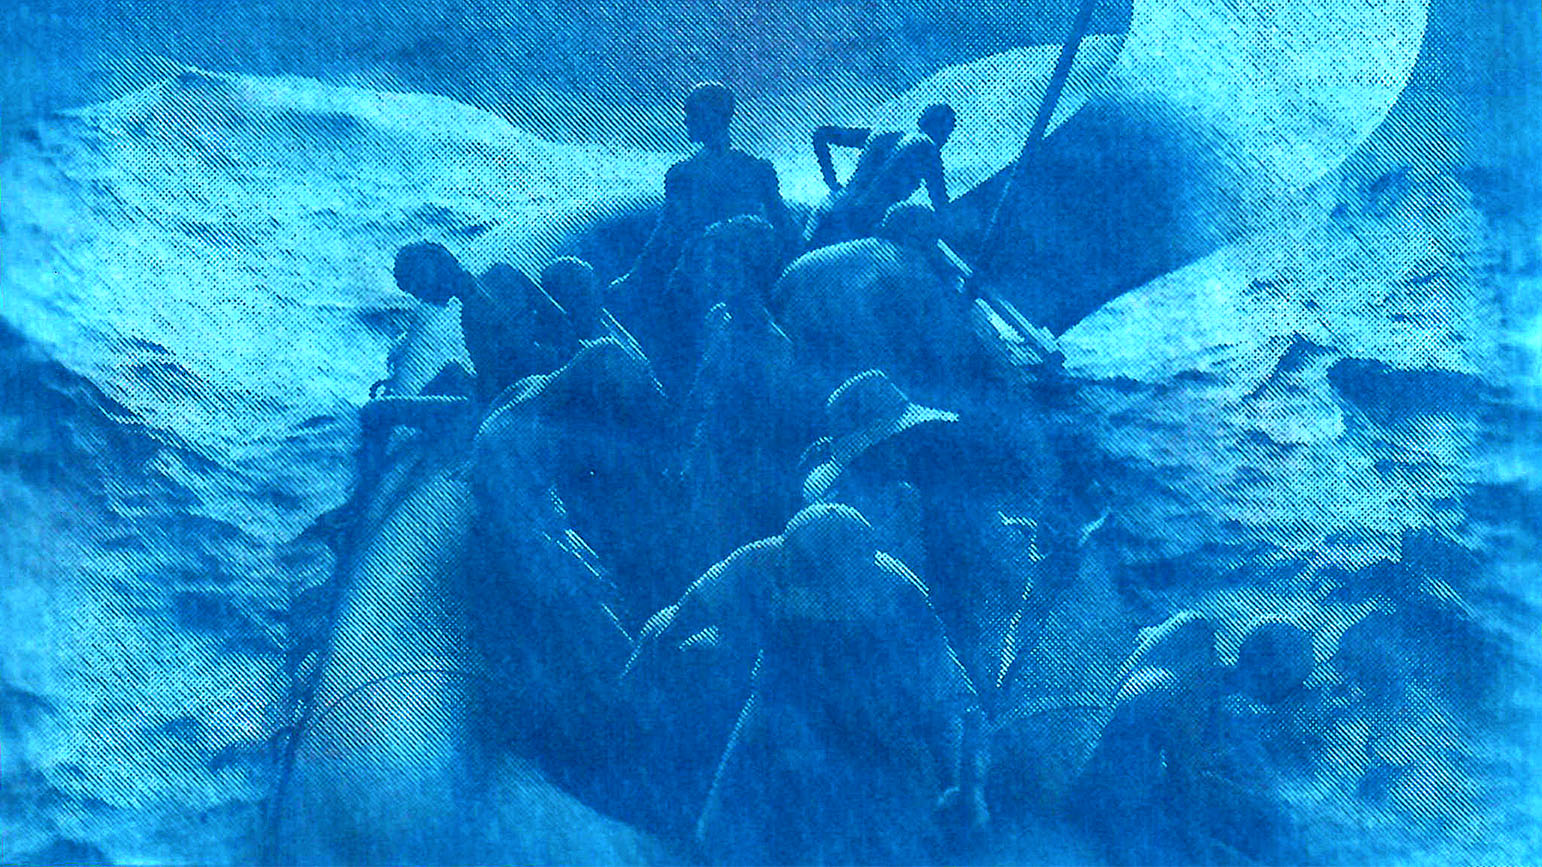 Digital image of a group of people on a life raft in a storm